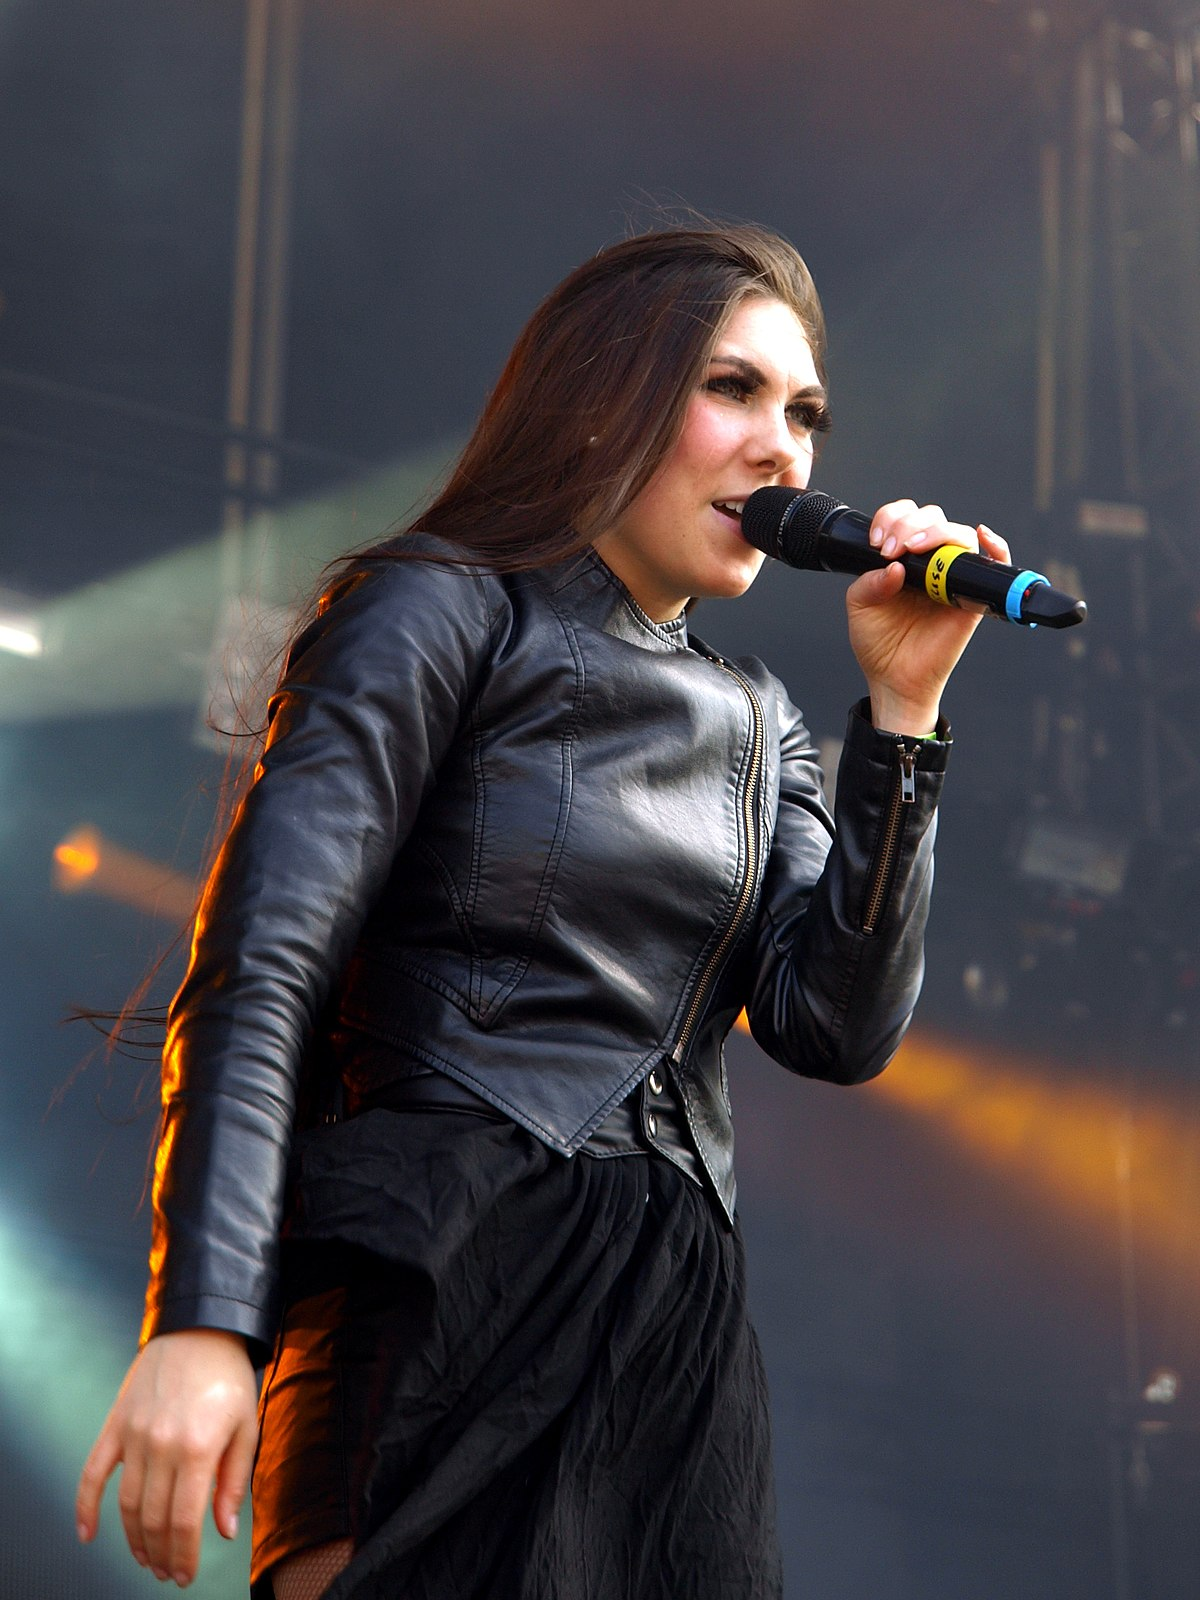 Rock Girl Wallpaper Elize Ryd Wikipedia